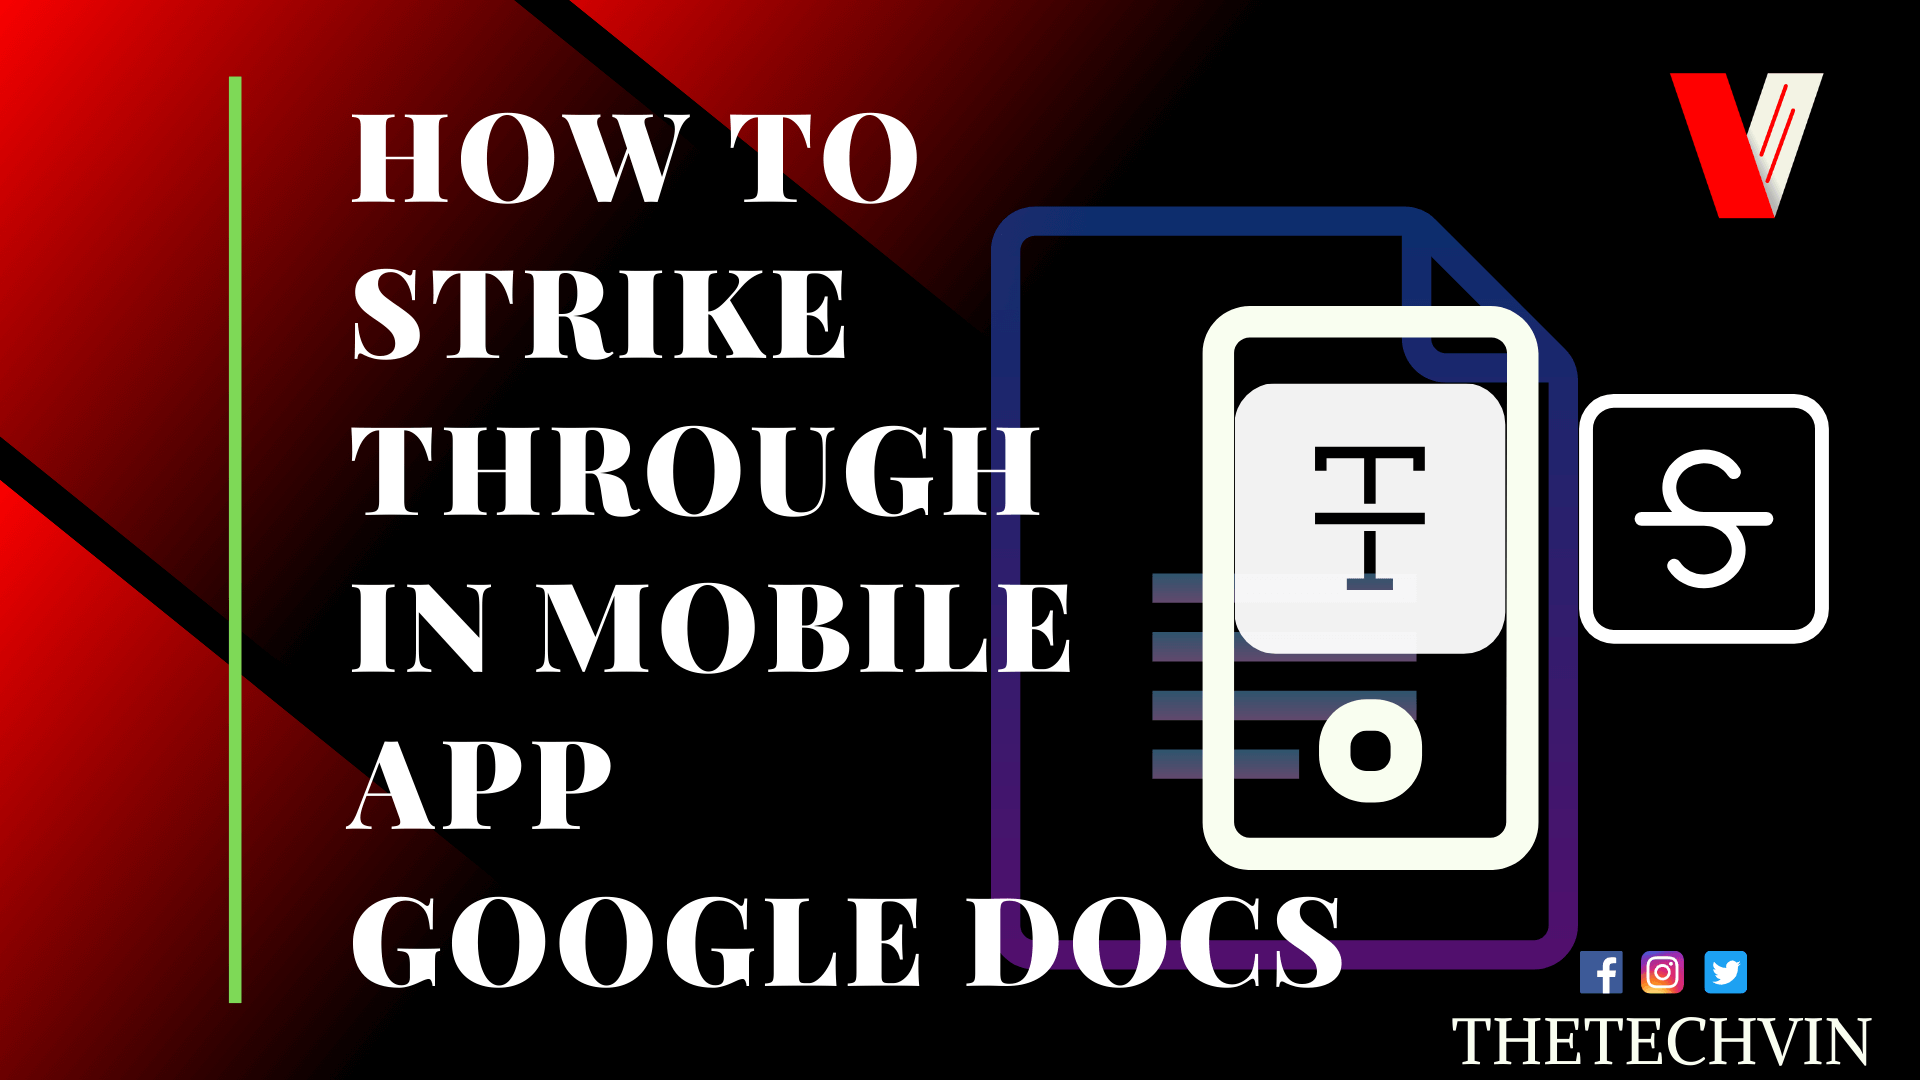 How to Cross Out text in Google docs app